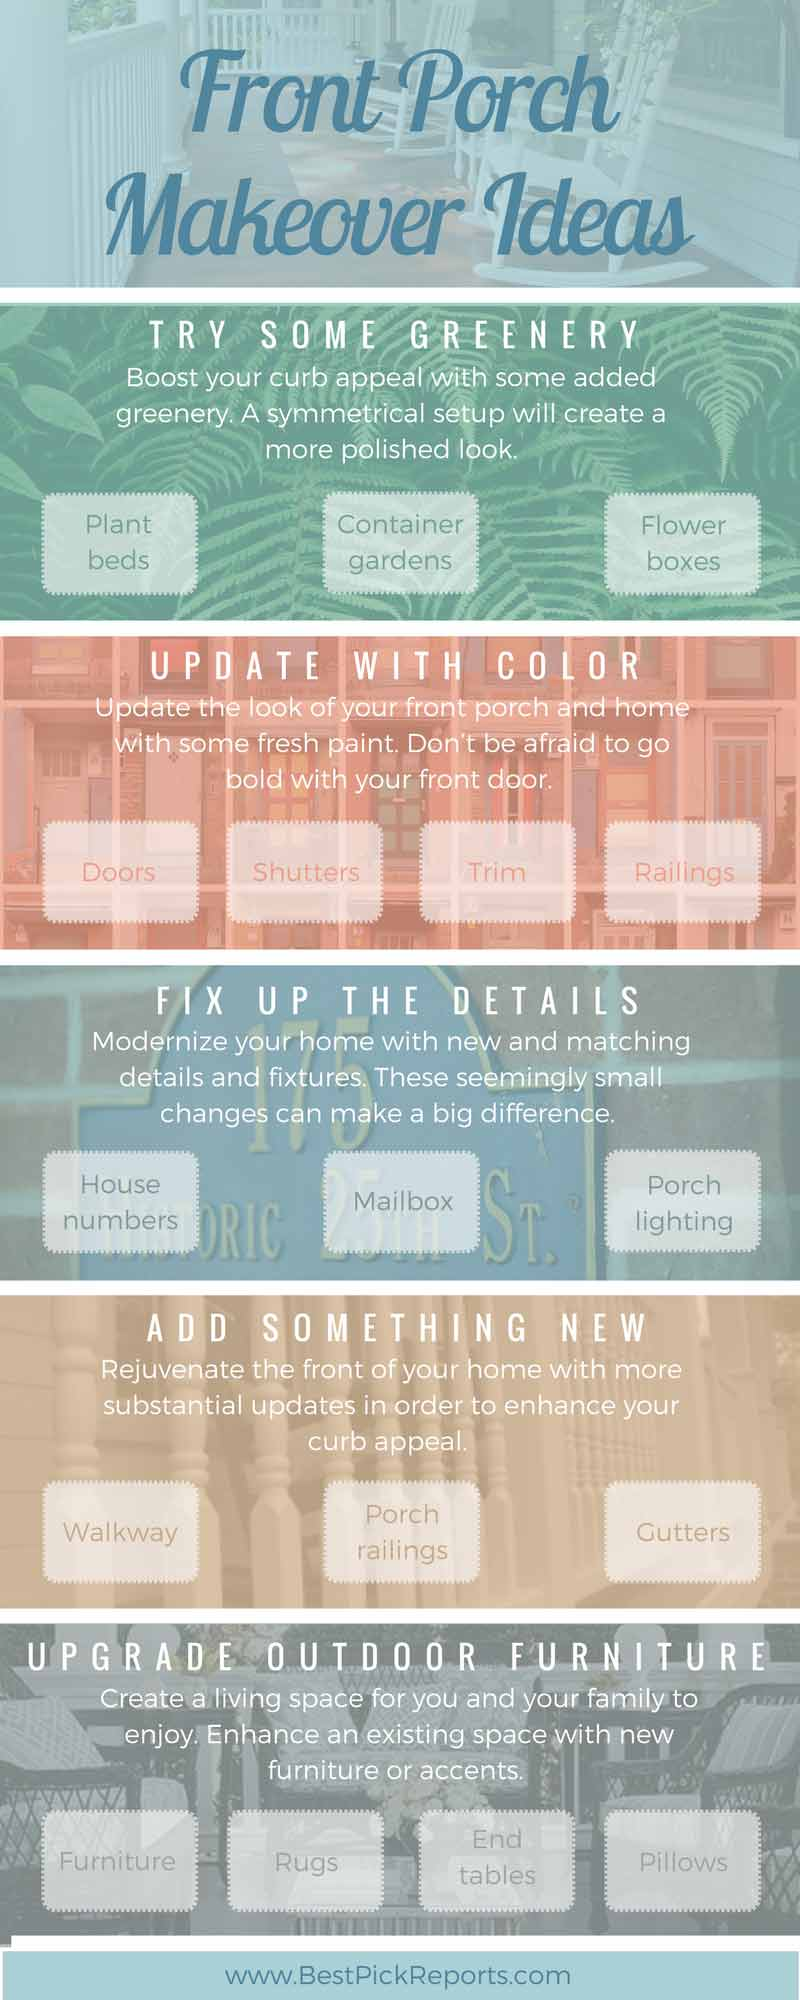 Infographic on Front Porch Makeover Ideas